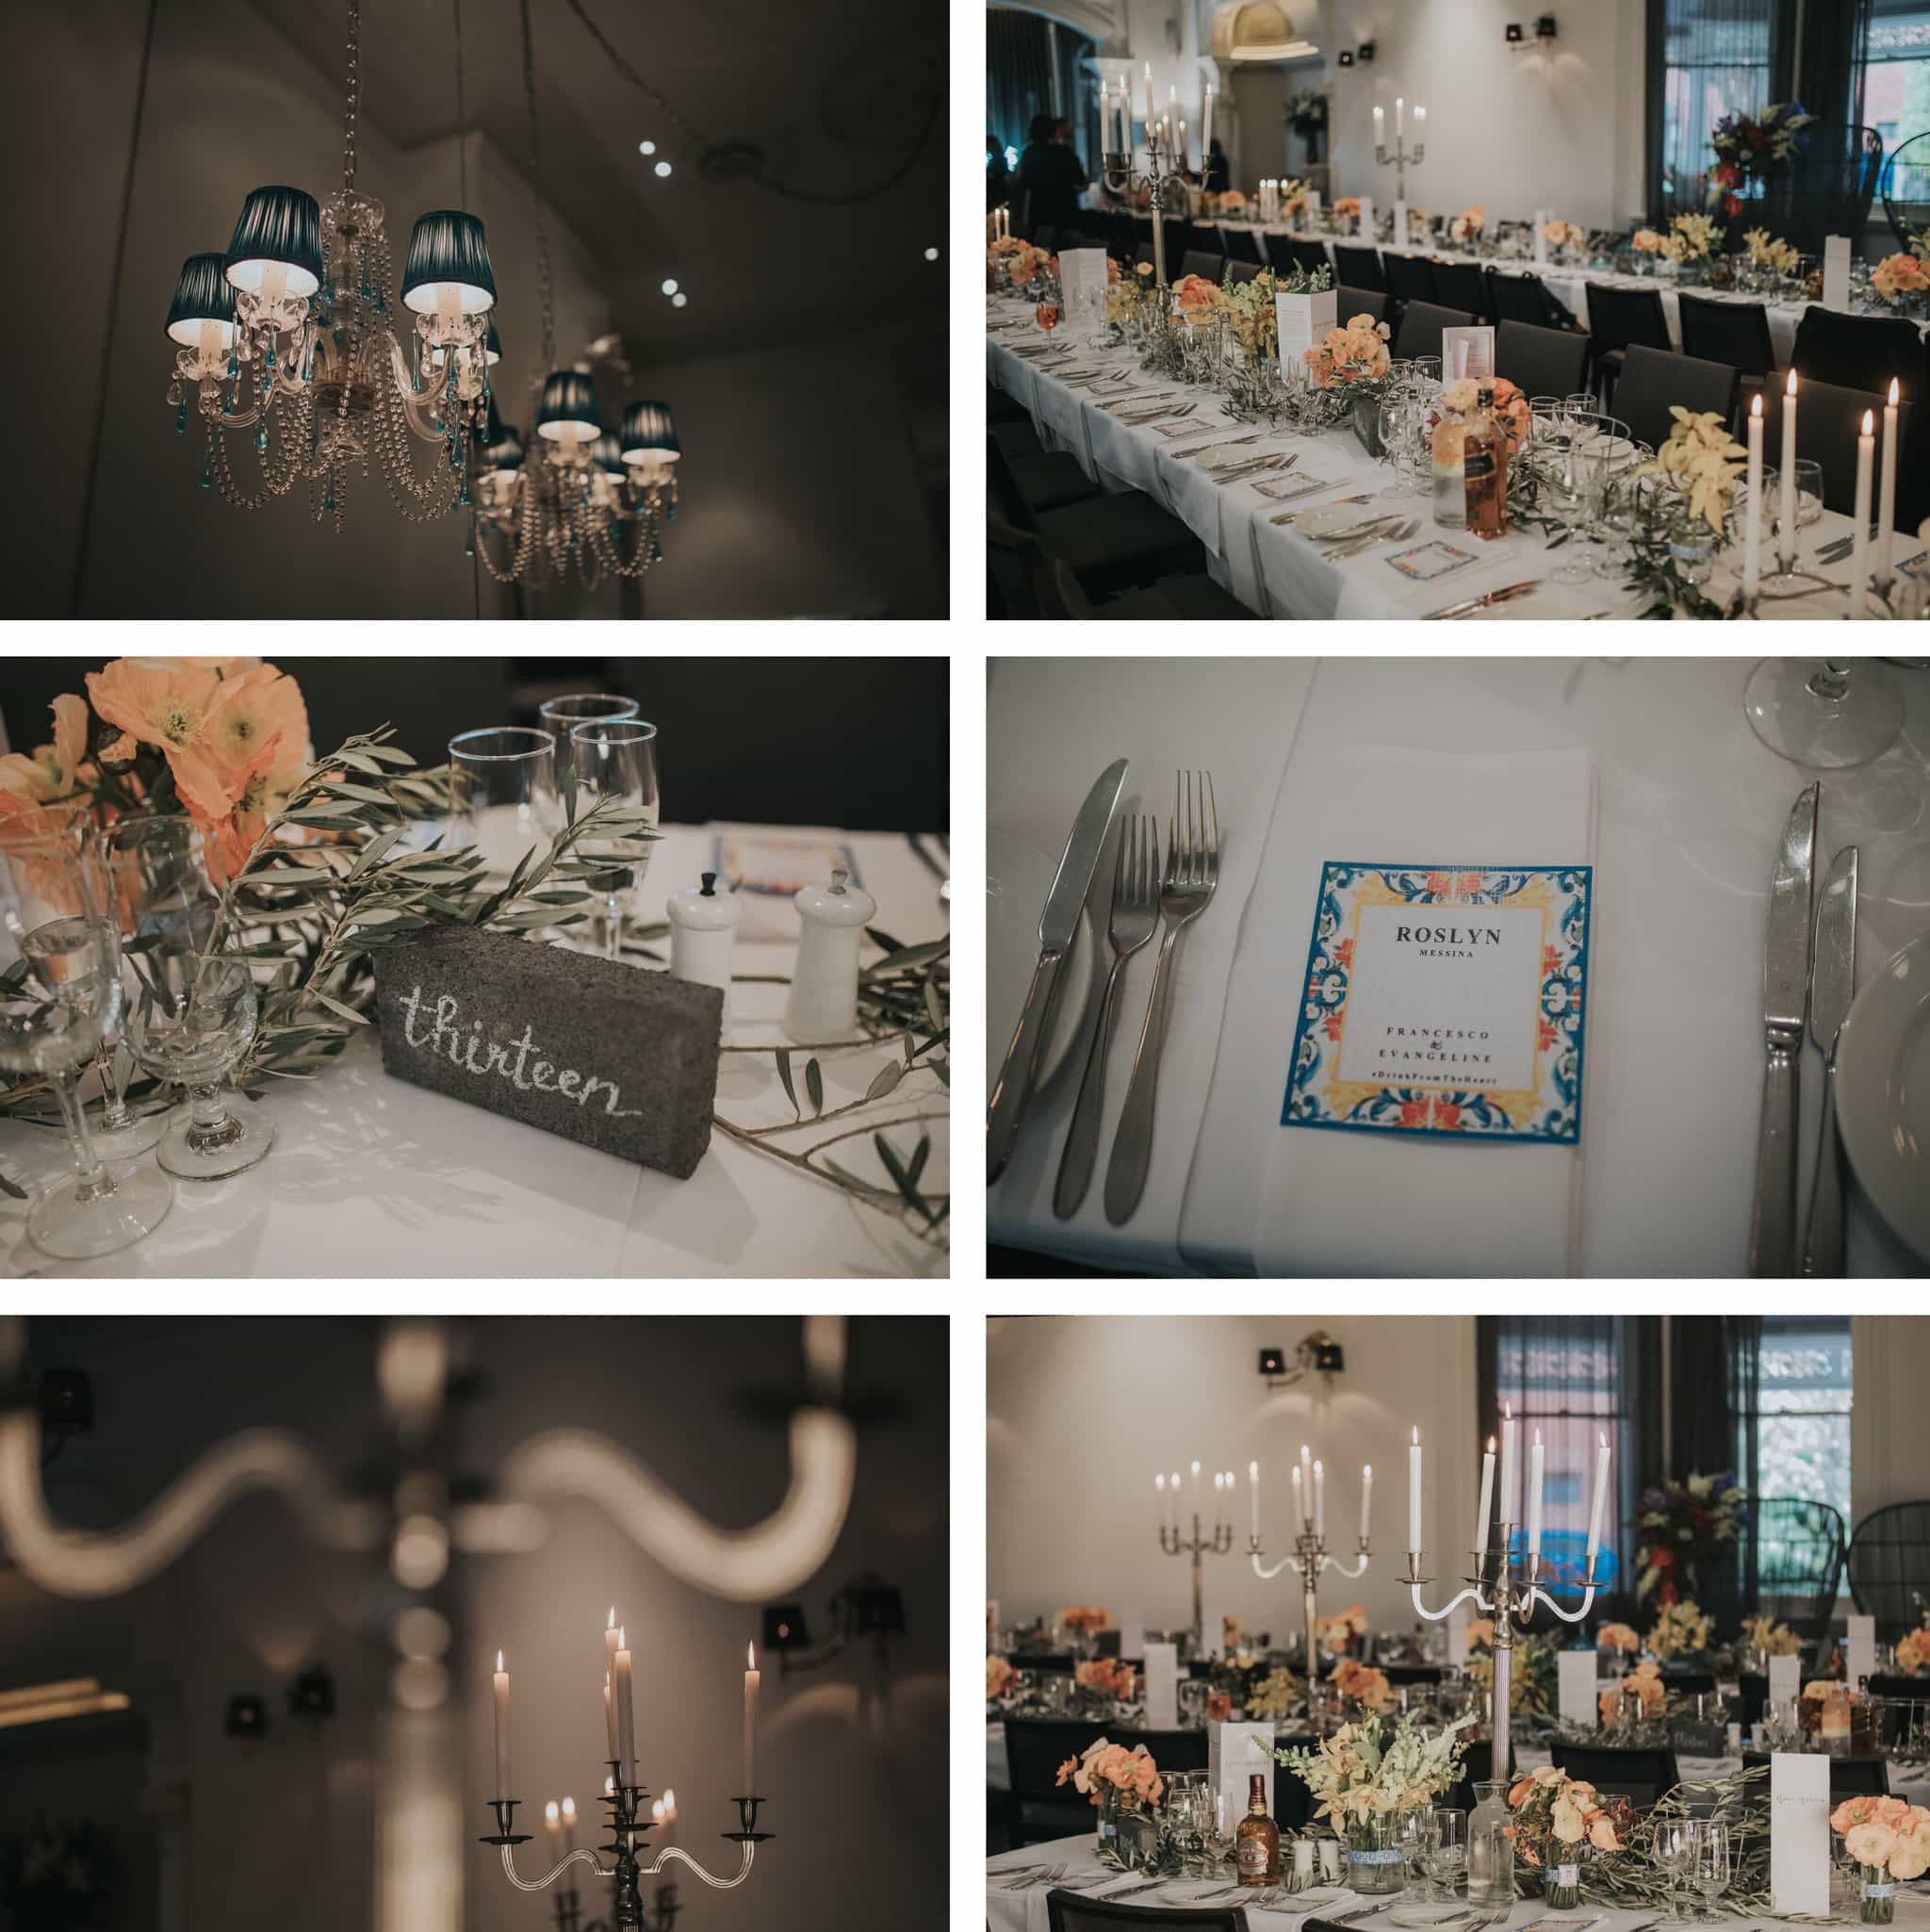 Wedding deco at Quat Quatta - Wedding function venue in Melbourne - Photography by freshphotography